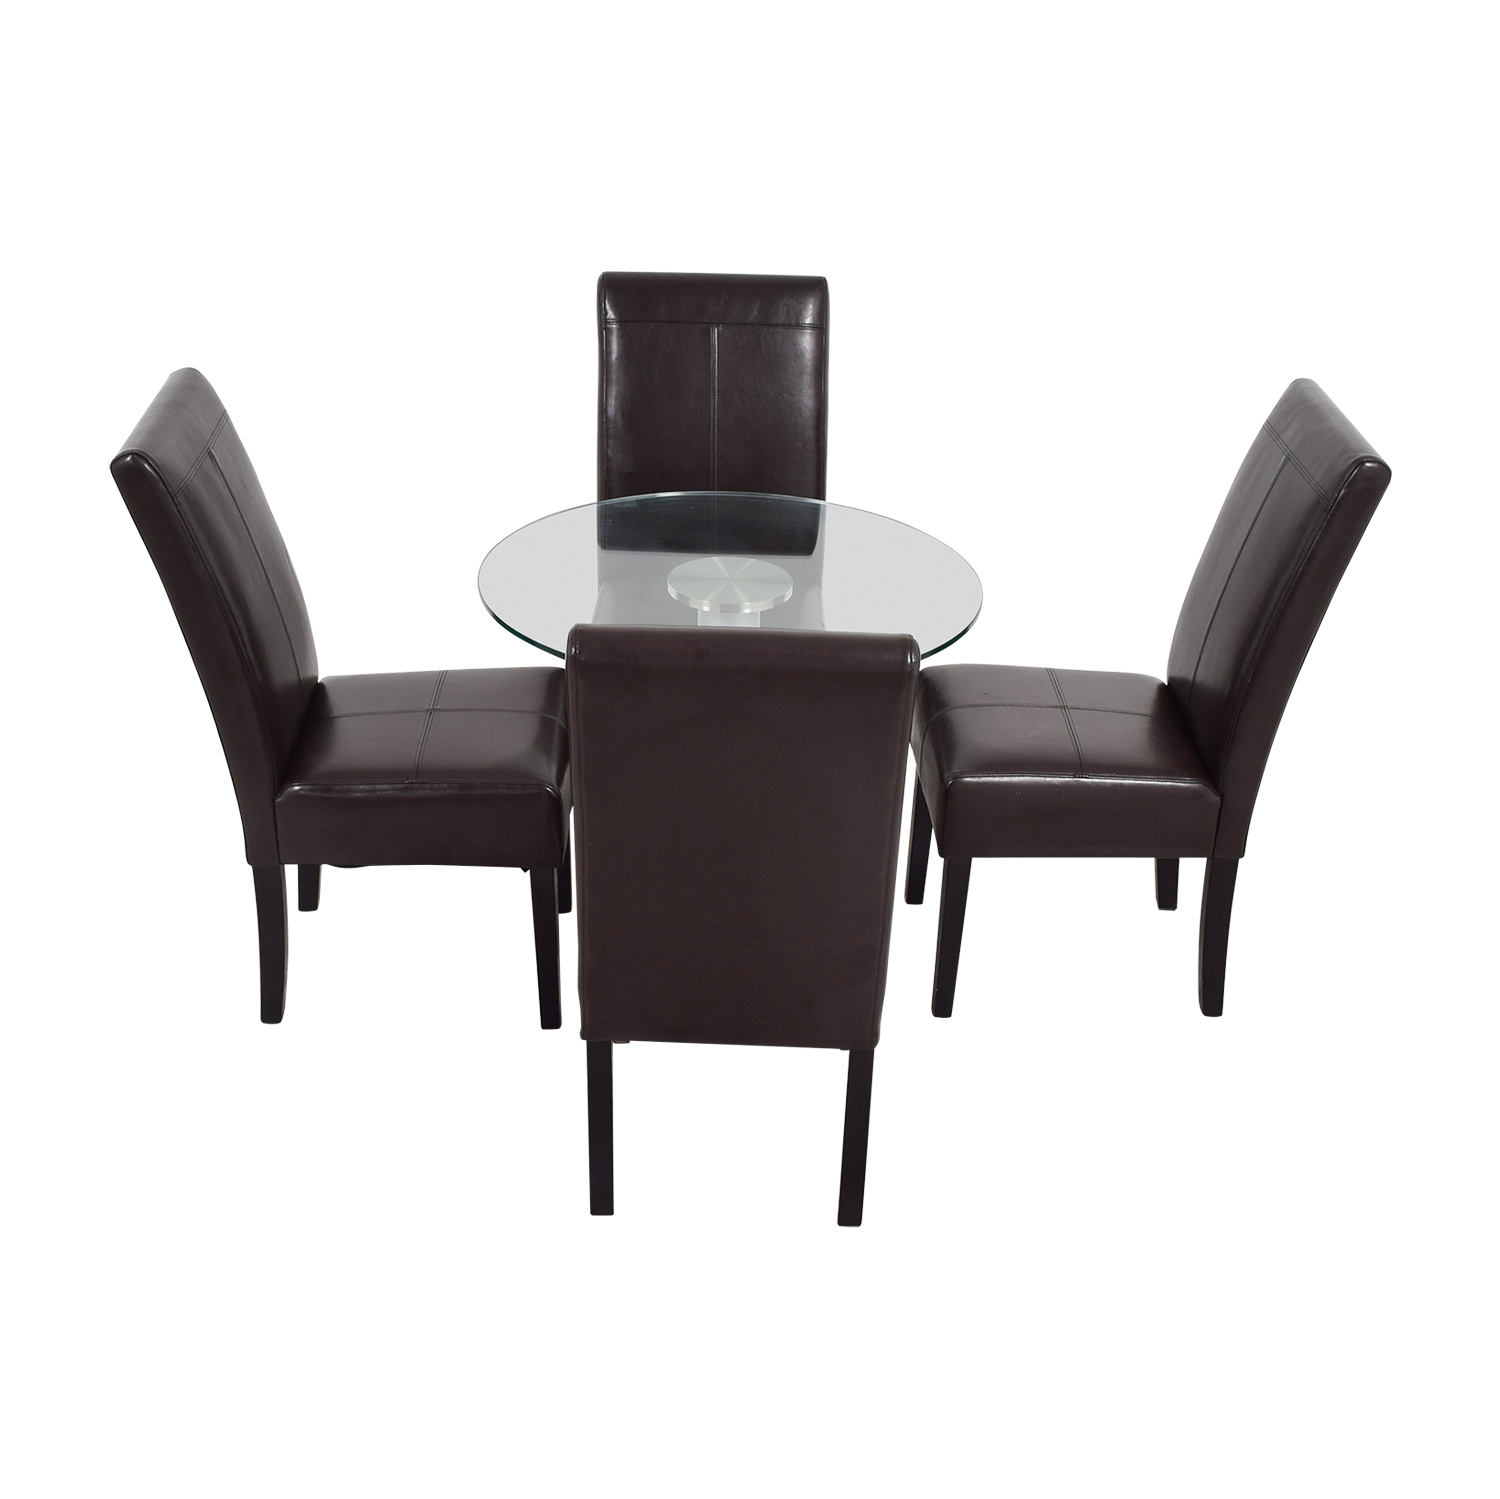 Round Glass and Metal Dining Set used